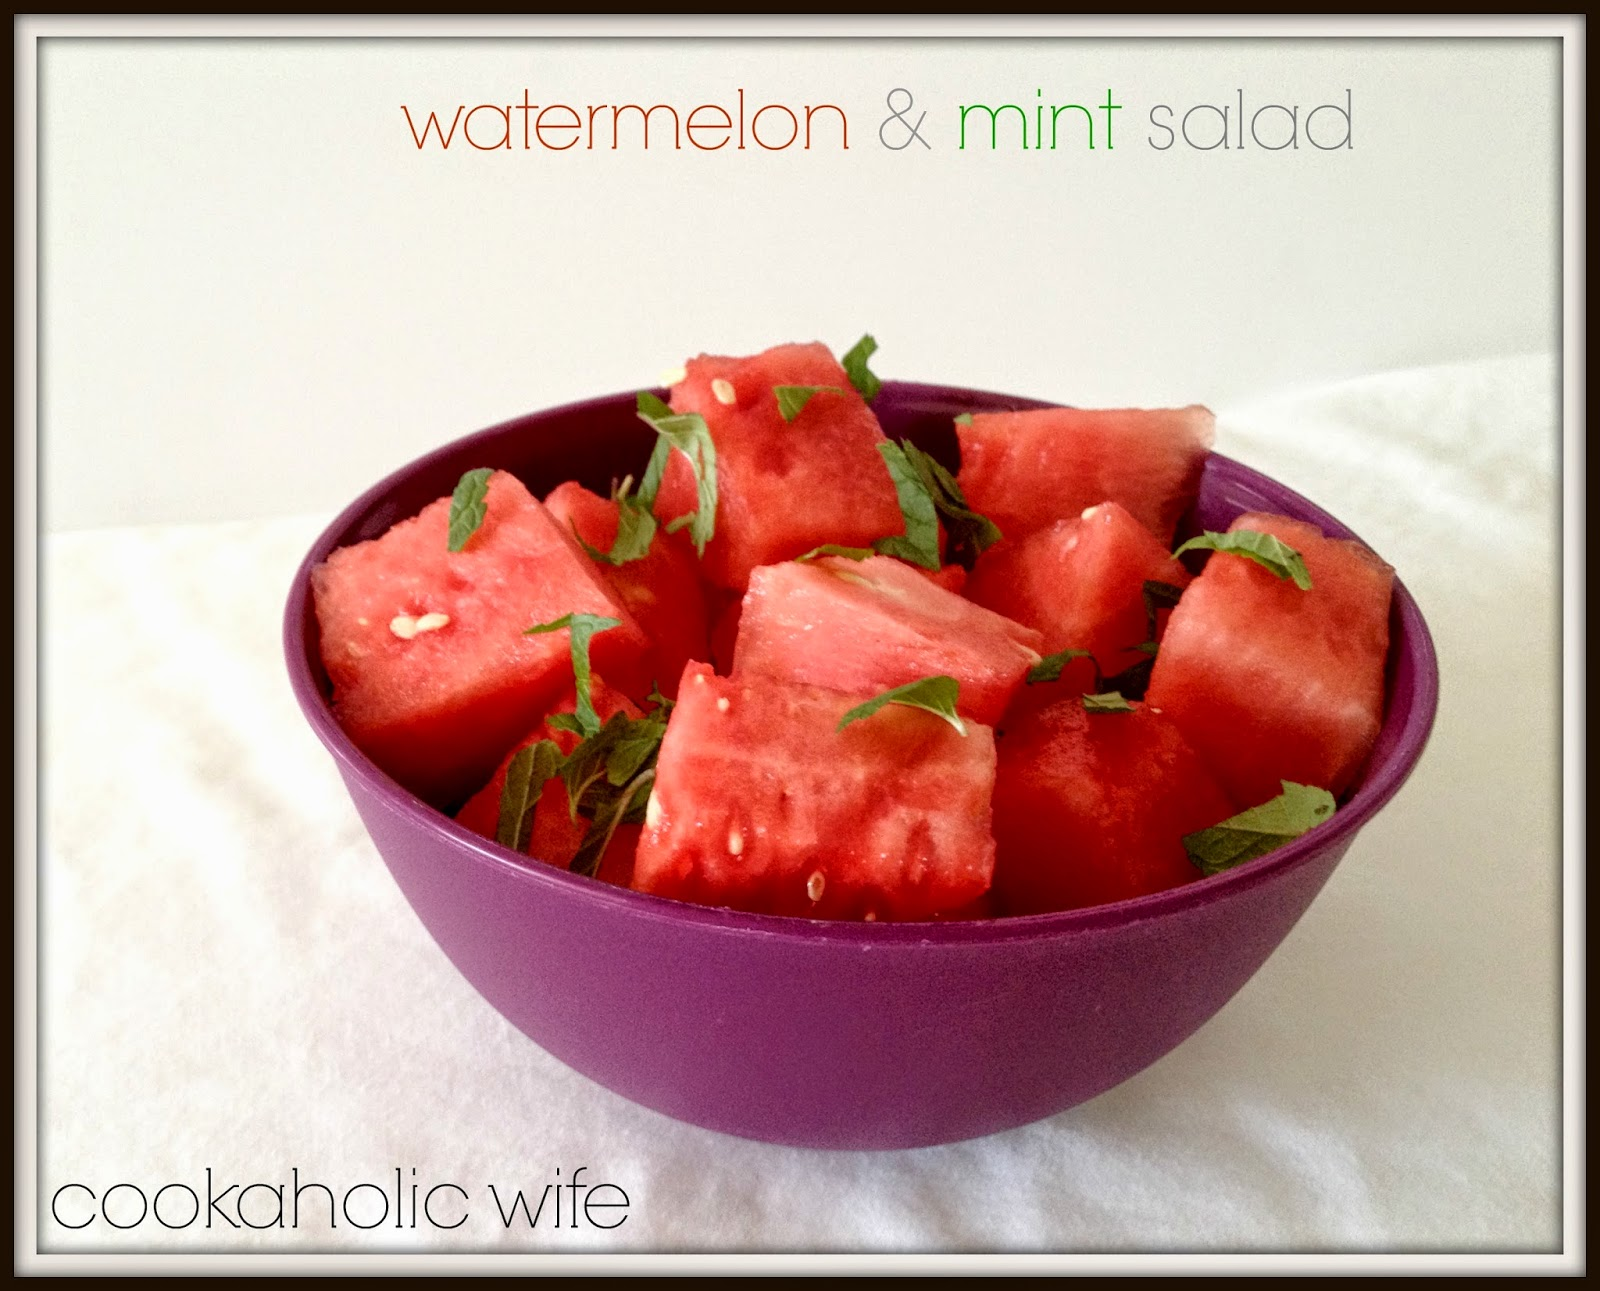 Cookaholic Wife: Watermelon and Mint Salad